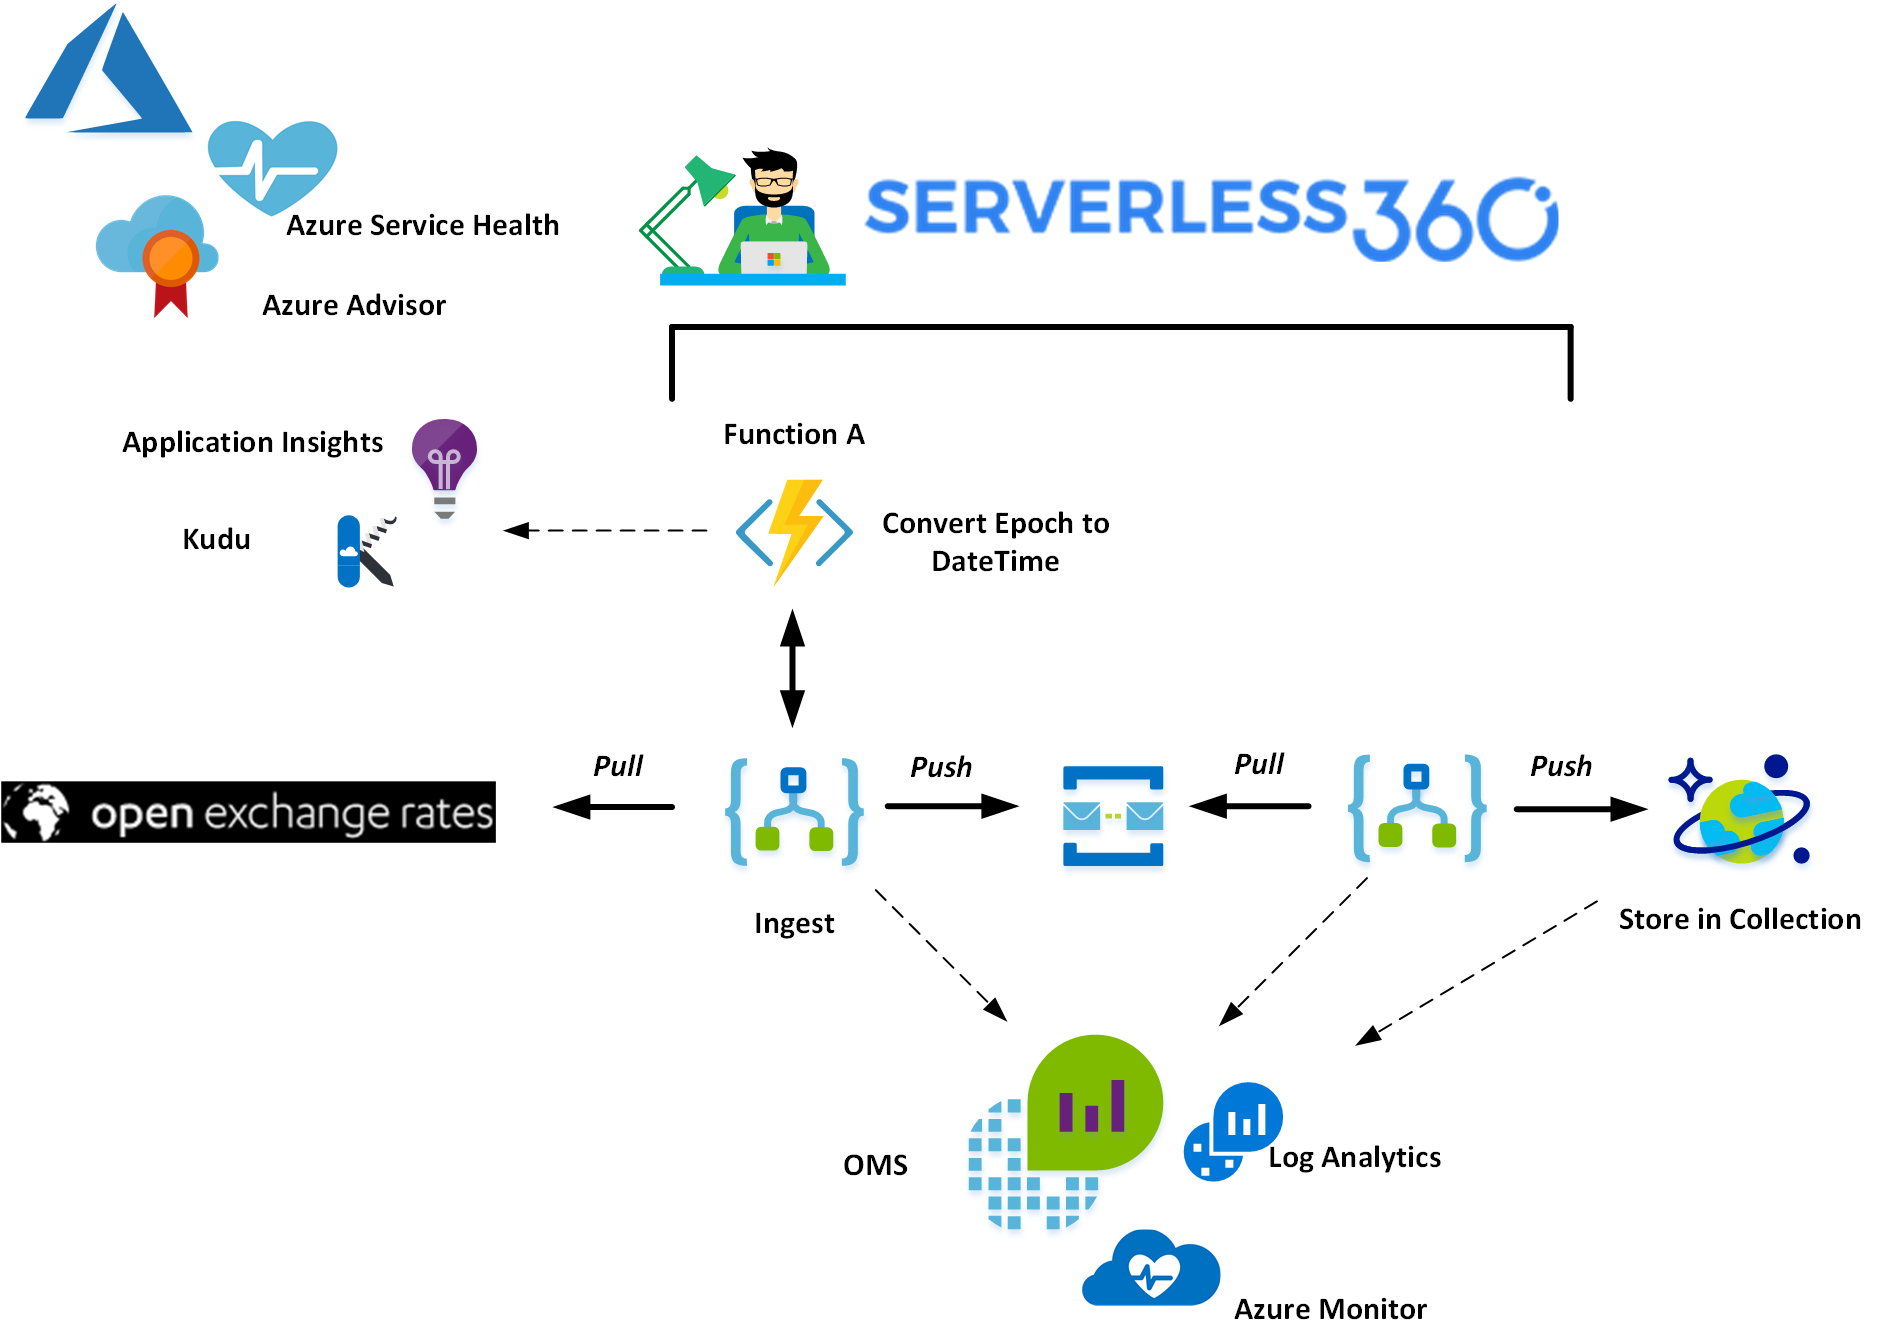 Monitoring Azure Functions with Serverless360 - Azure Functions